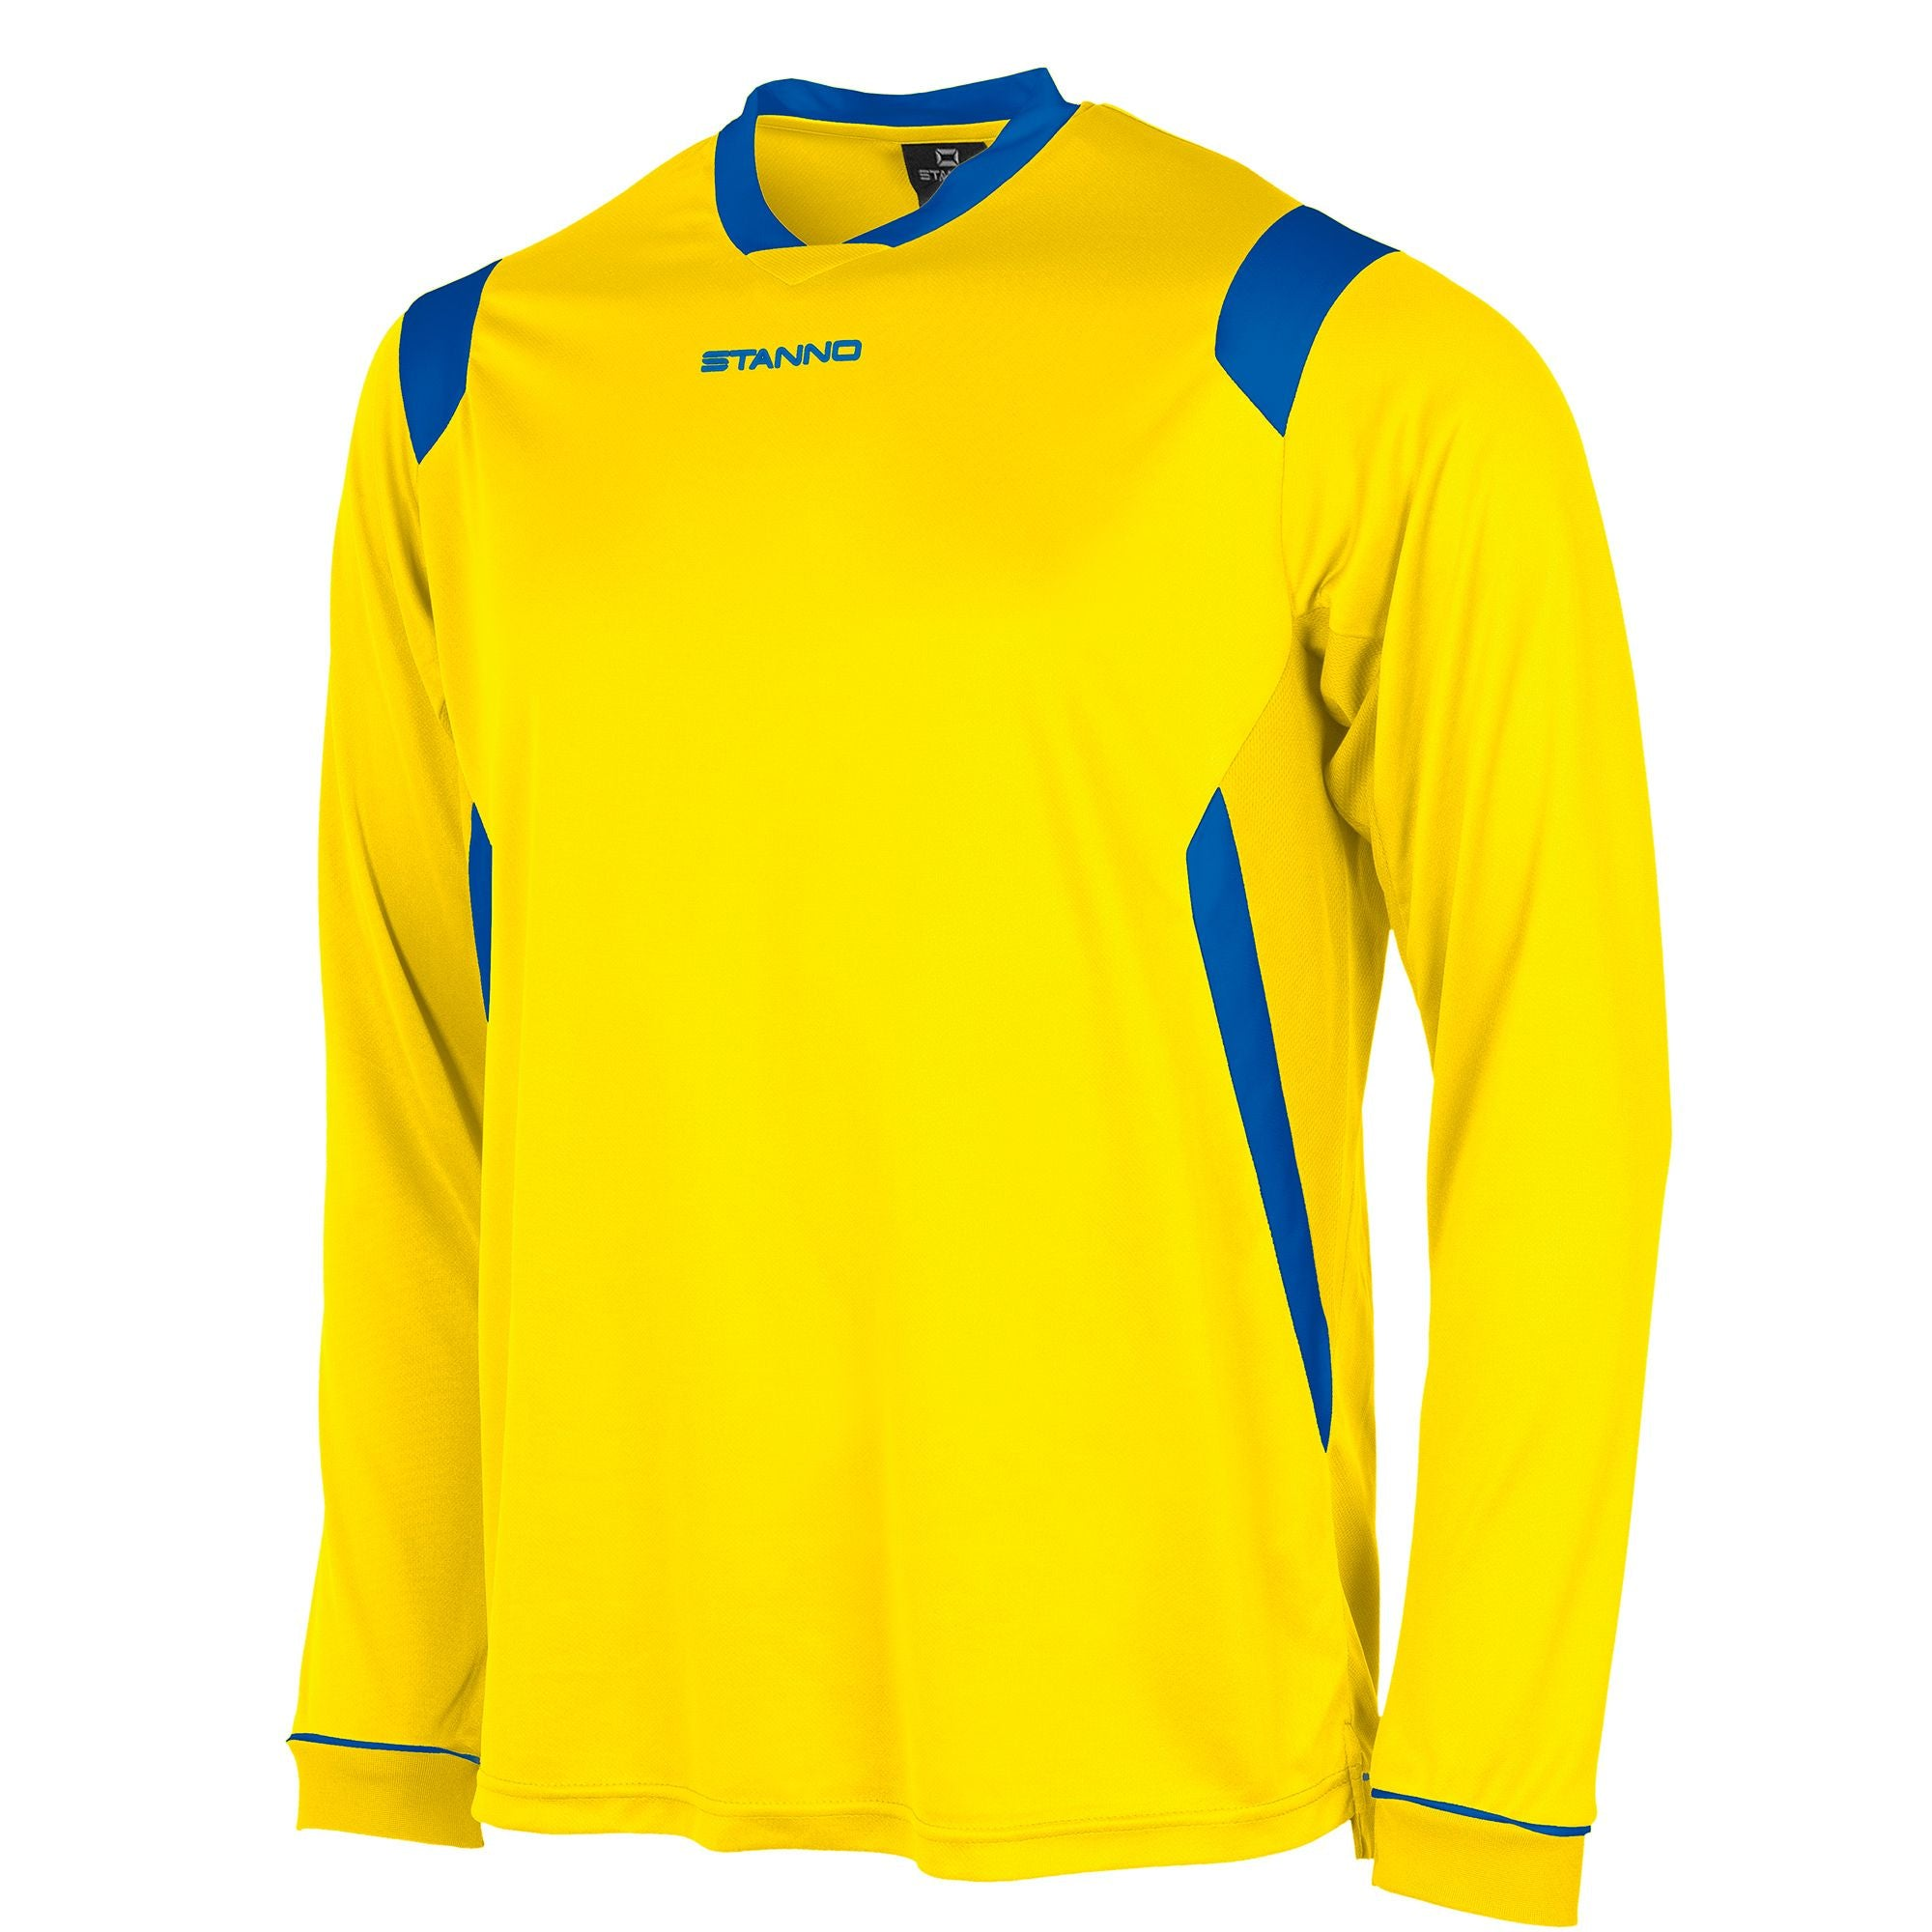 Stanno Arezzo long sleeved shirt in yellow with royal blue contrast collar, and stripe detail on shoulders and sides.